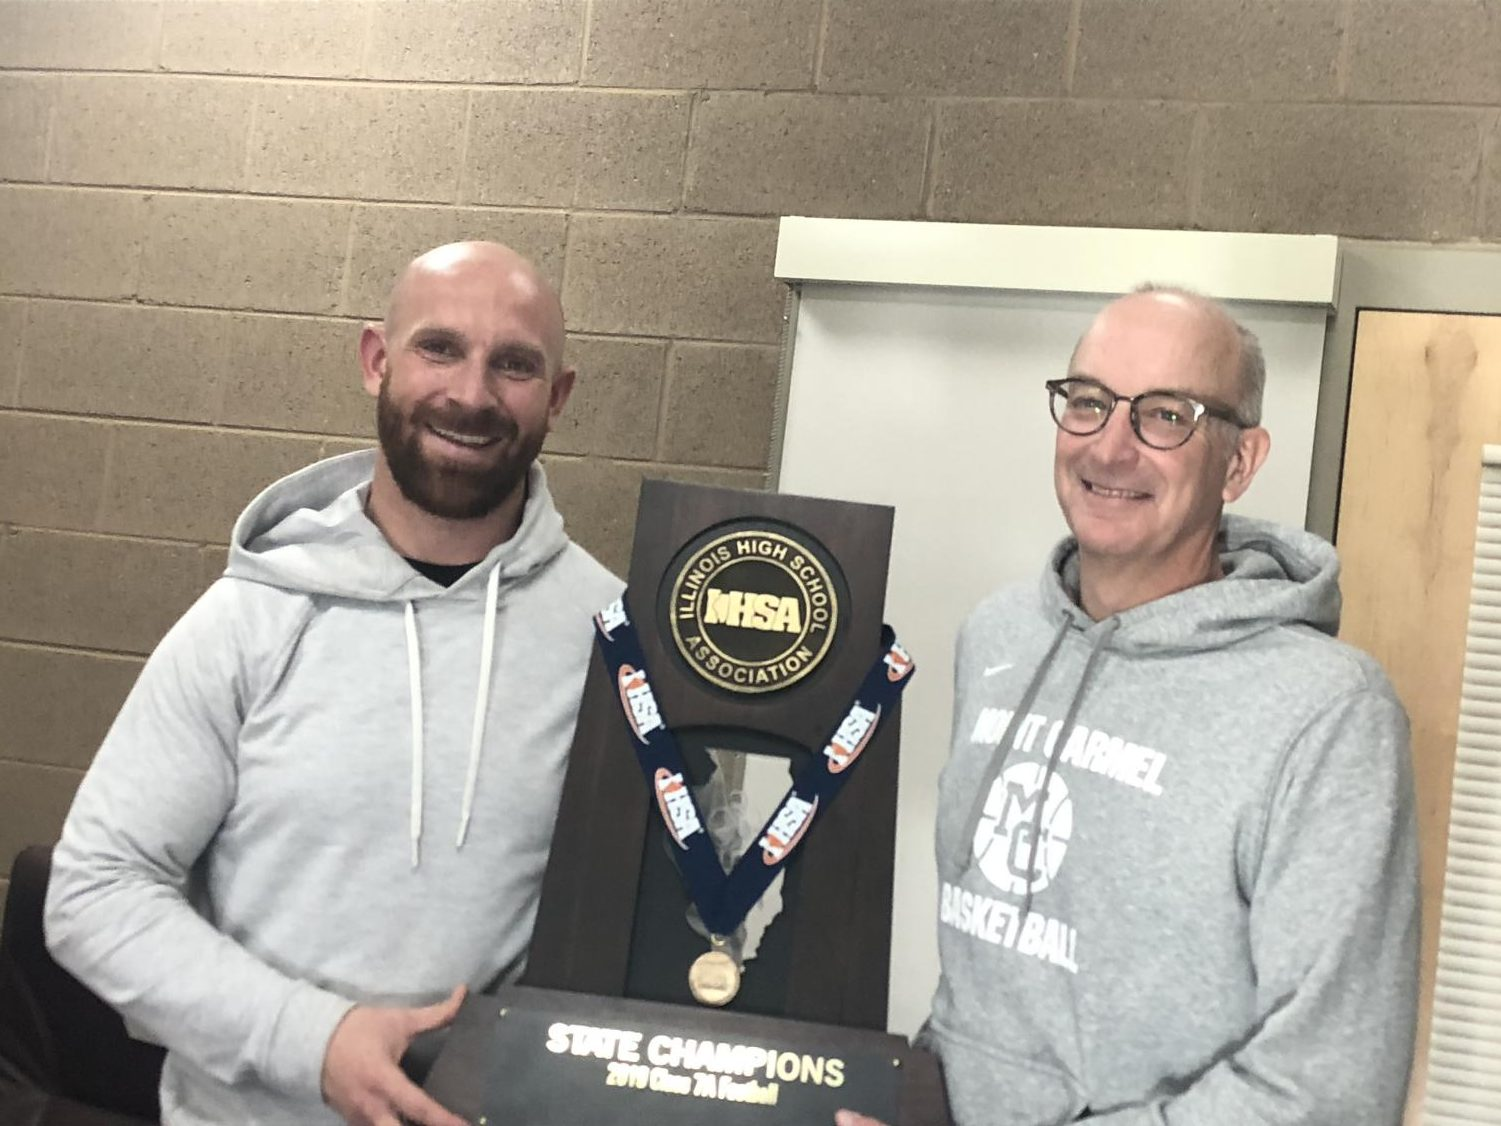 Head Coach Jordan Lynch and Athletic Director Dan LaCount are all smiles as they celebrate the schools 13th IHSA football championship.